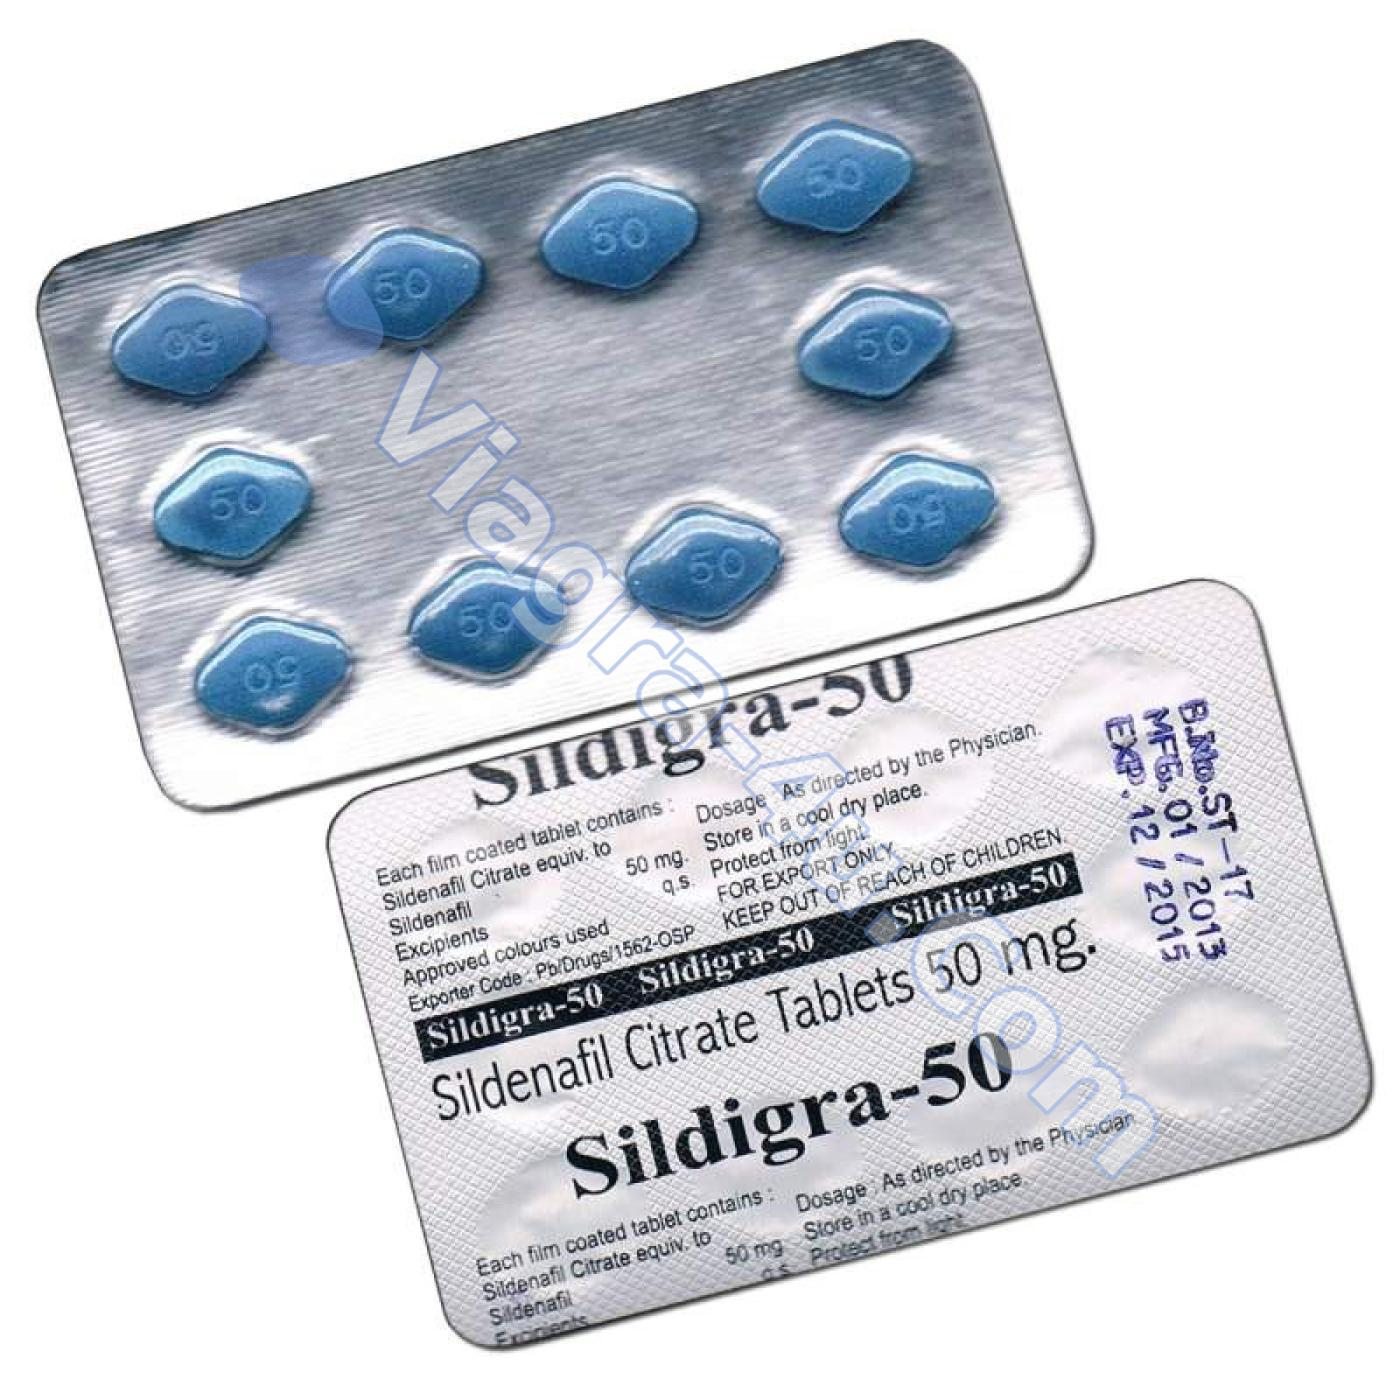 Manforce 50 mg tablet price